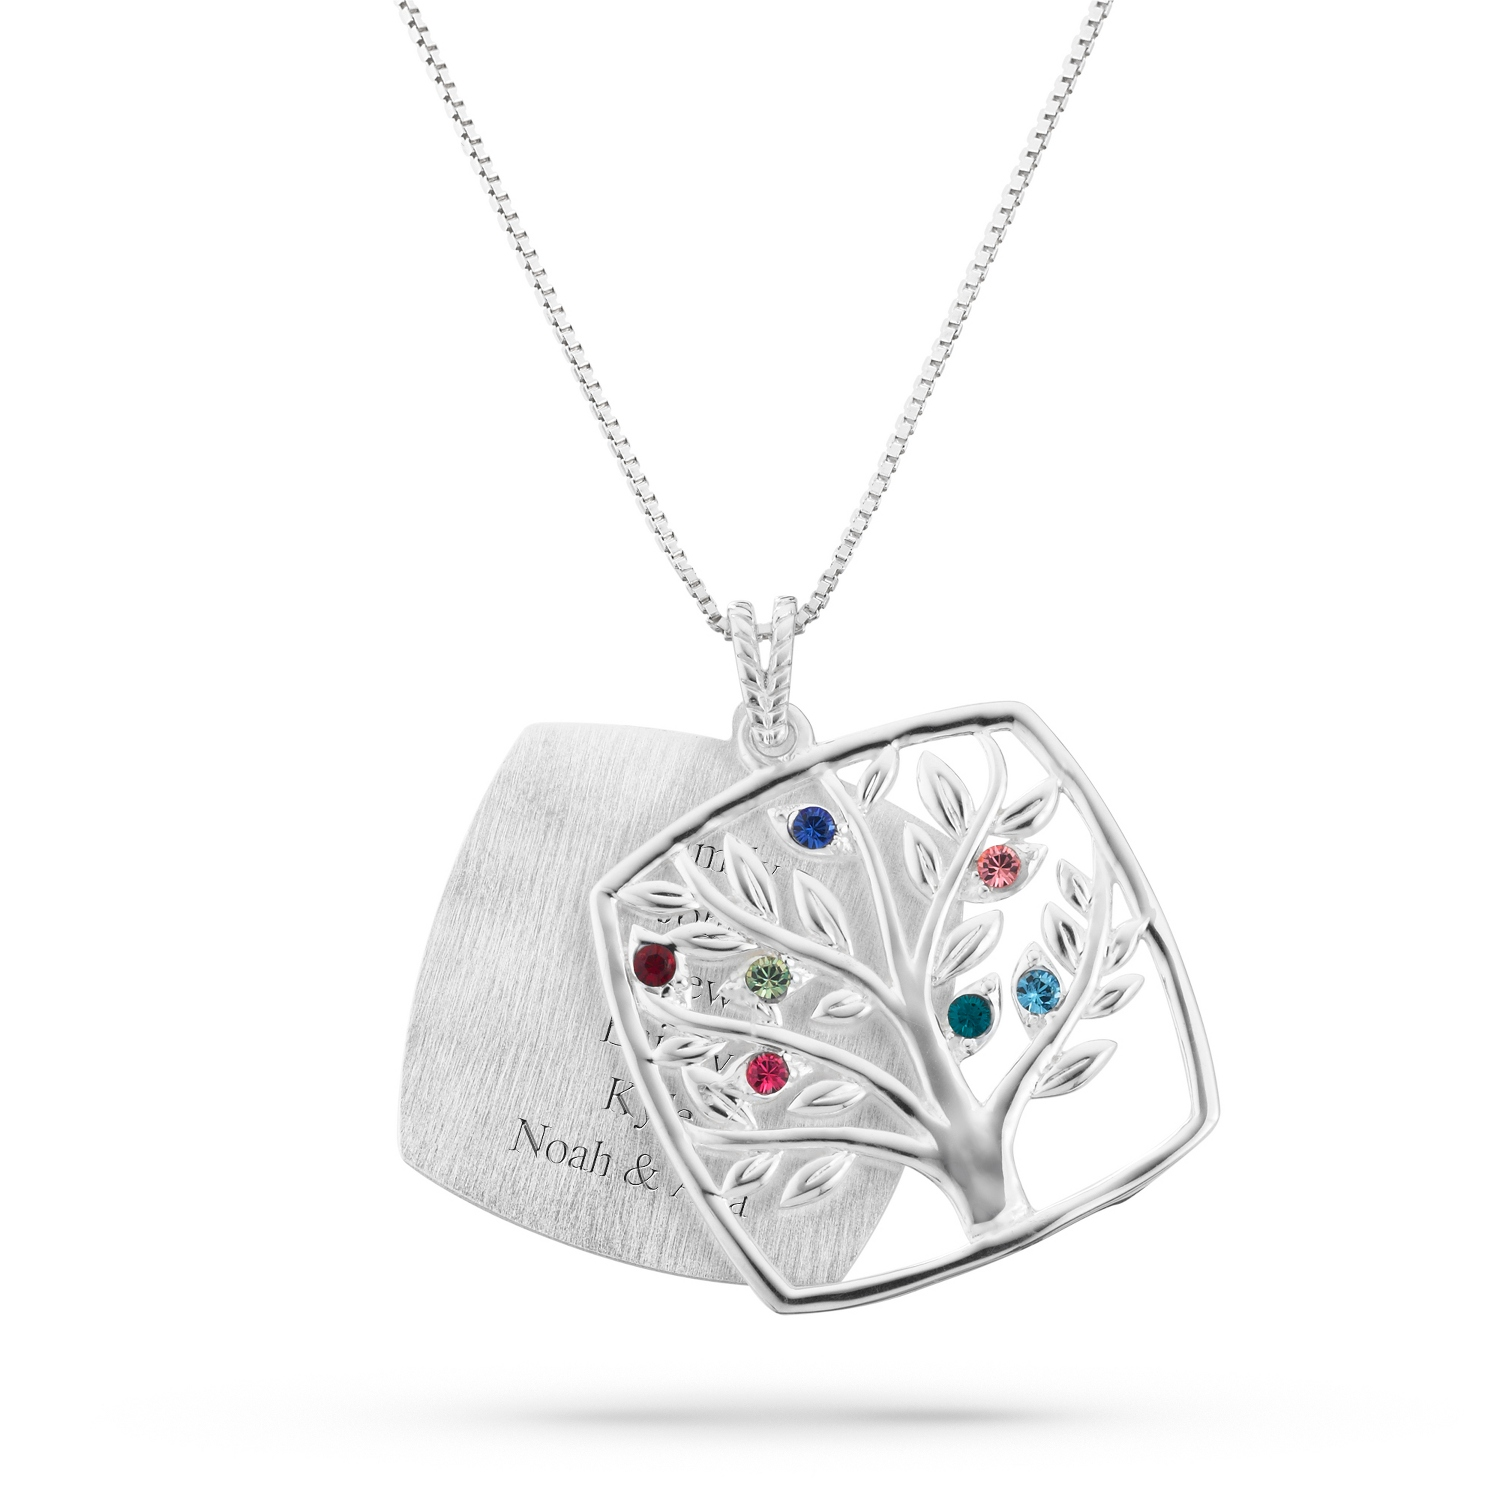 locket mothers pendant grandmother tree gold jewelry gift birthstone family elegant day necklace